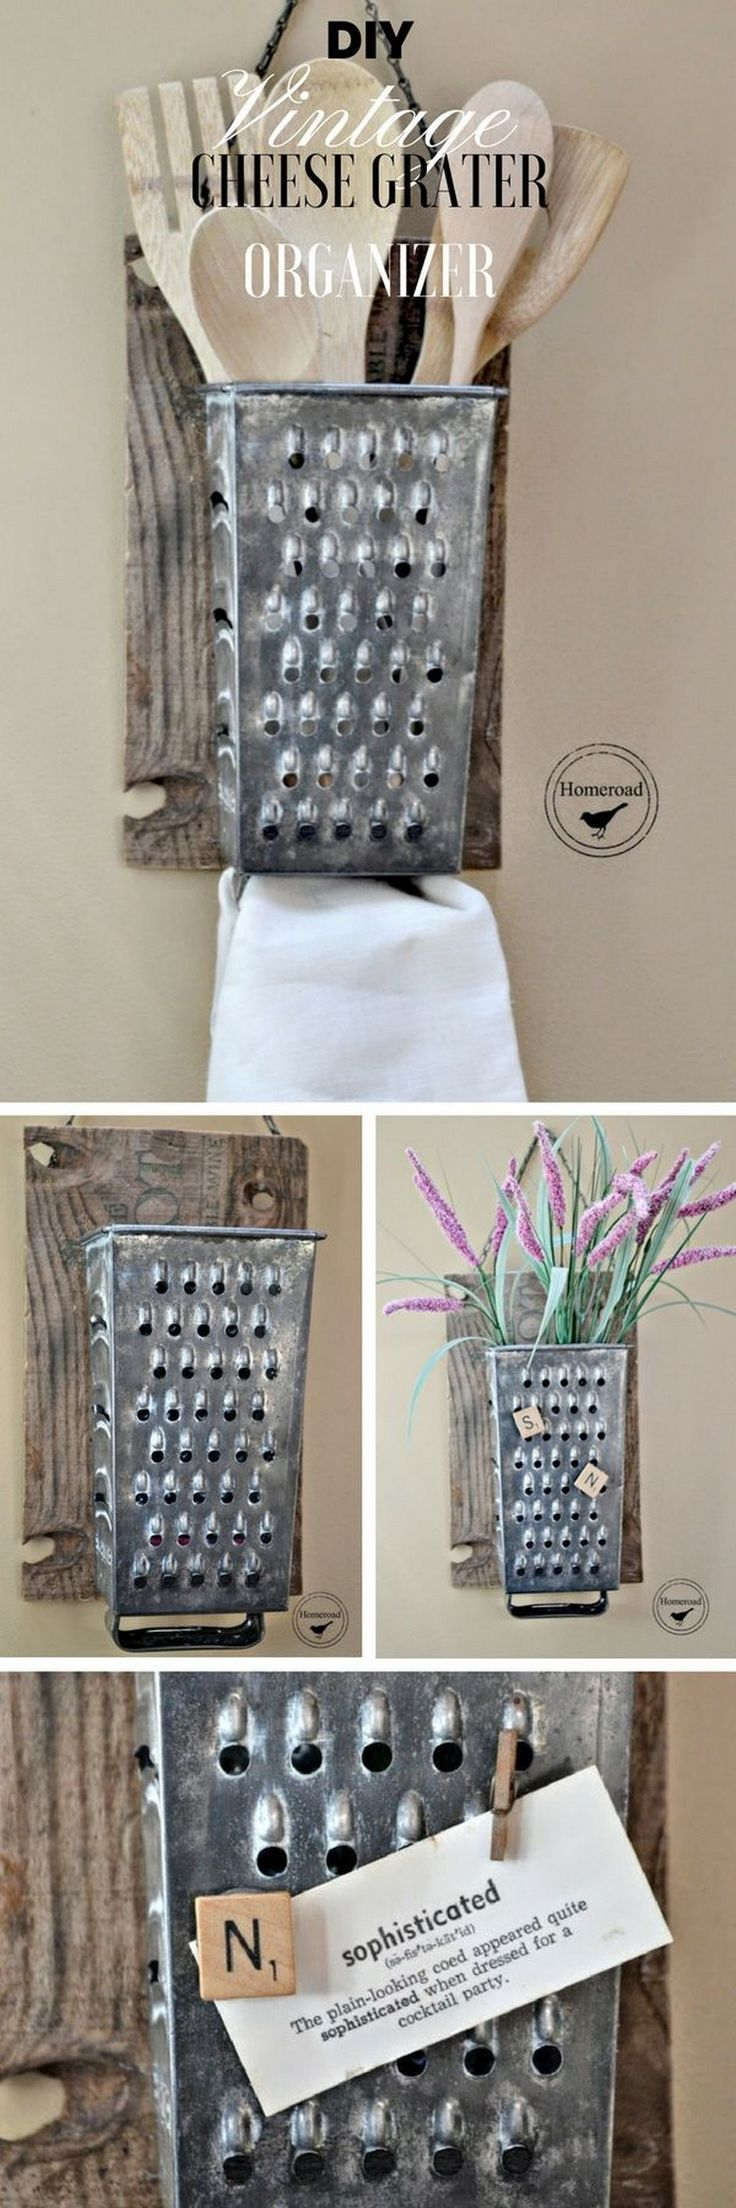 Best 25 rustic home decorating ideas on pinterest barnwood ideas painted mason jars and - Pinterest craft ideas for home decor property ...